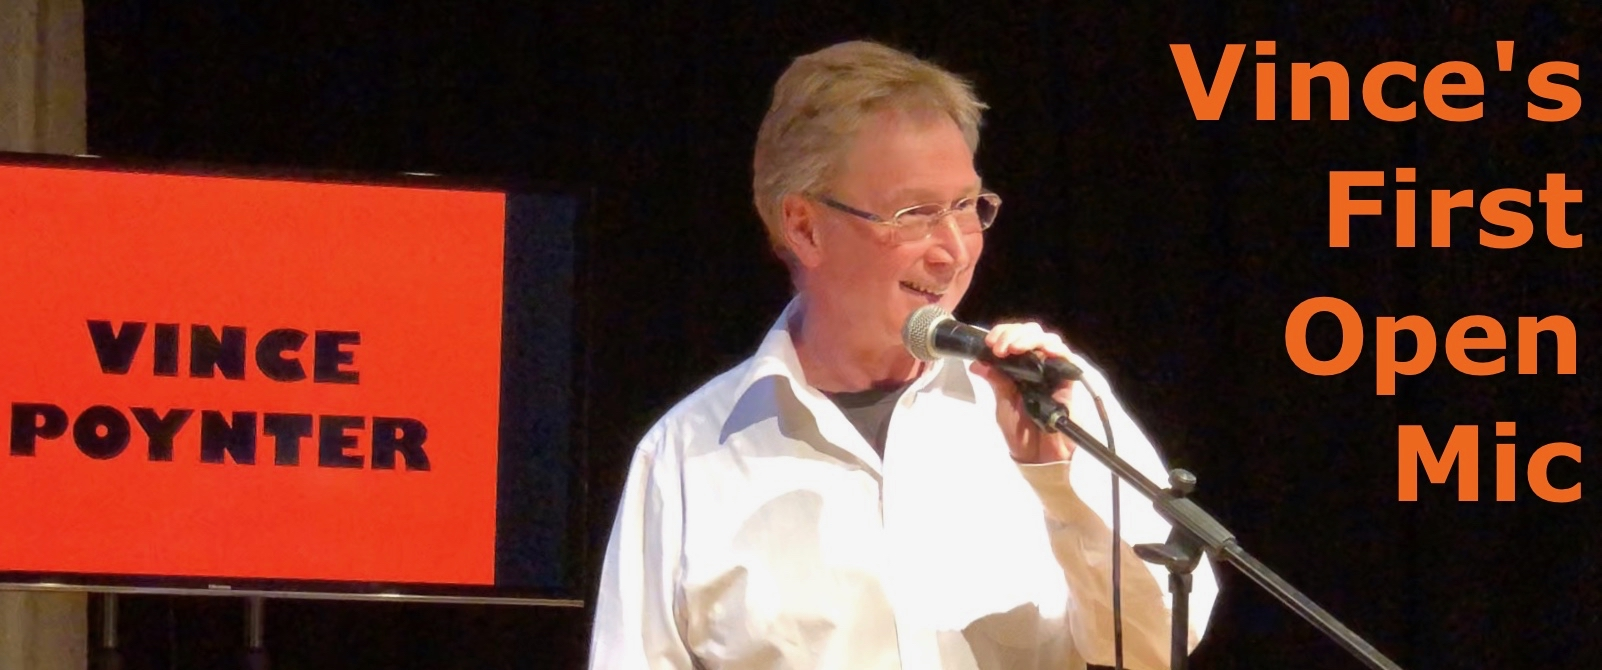 Image of a grinning Vince in a white shirt over a black tee-shirt performing his first open mic stand up routine using a stand mounted microphone. A large video display behind Vince shows his name, Vince Poynter, in bold black lettering on a red background. The room is otherwise dark.